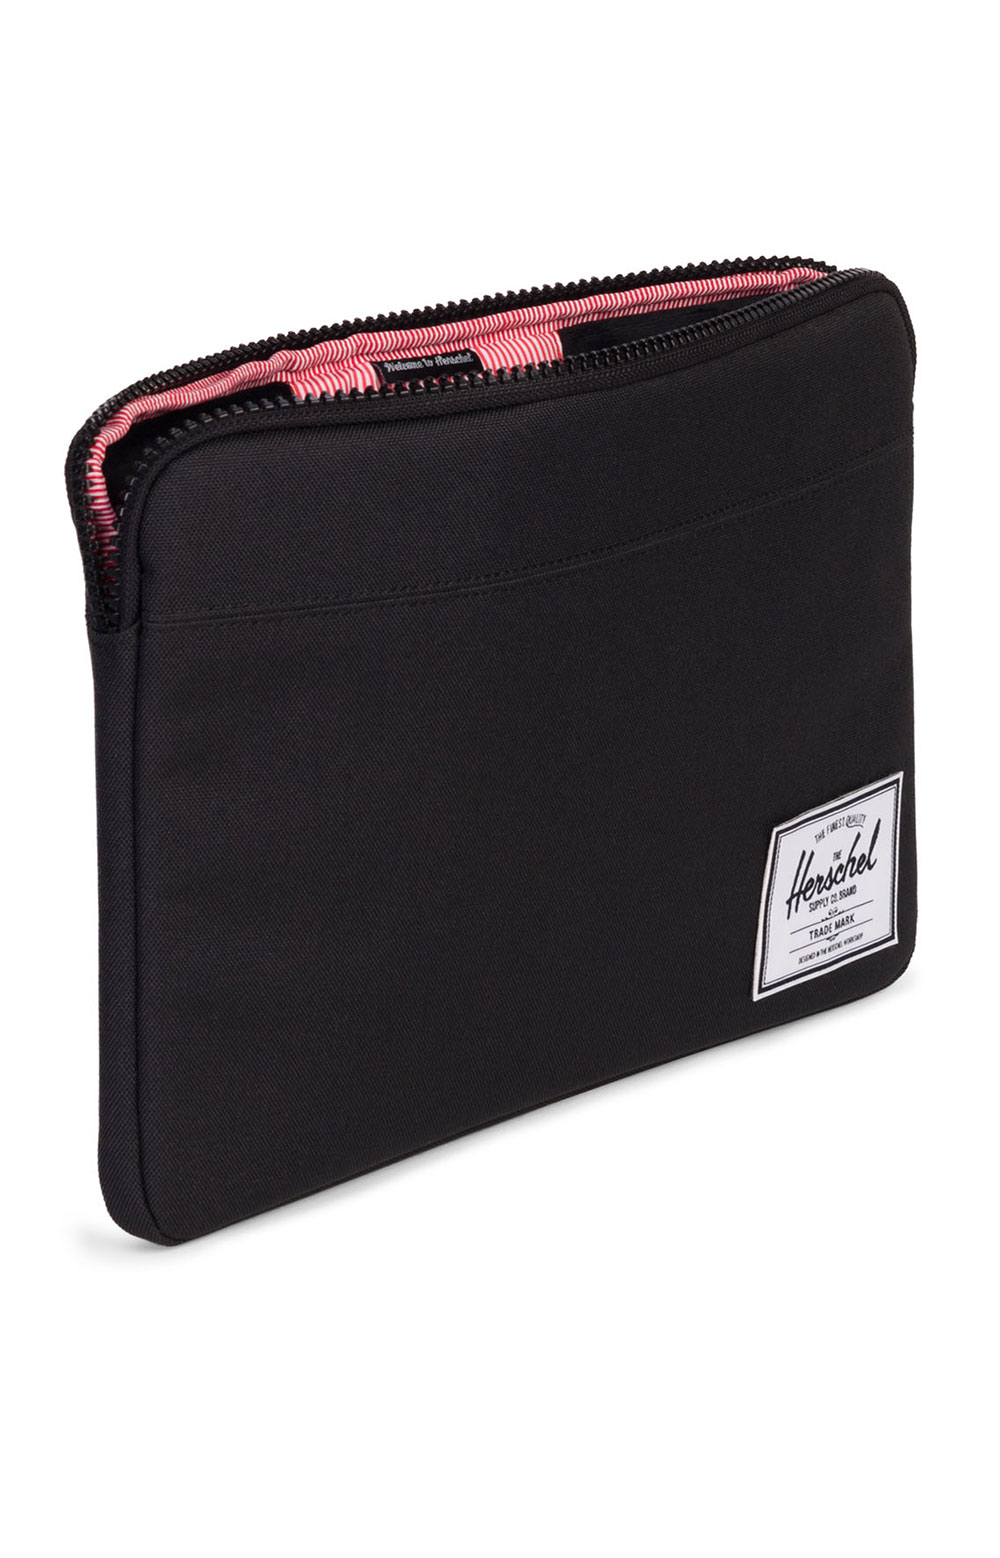 Anchor 15 Computer Sleeve - Black 3